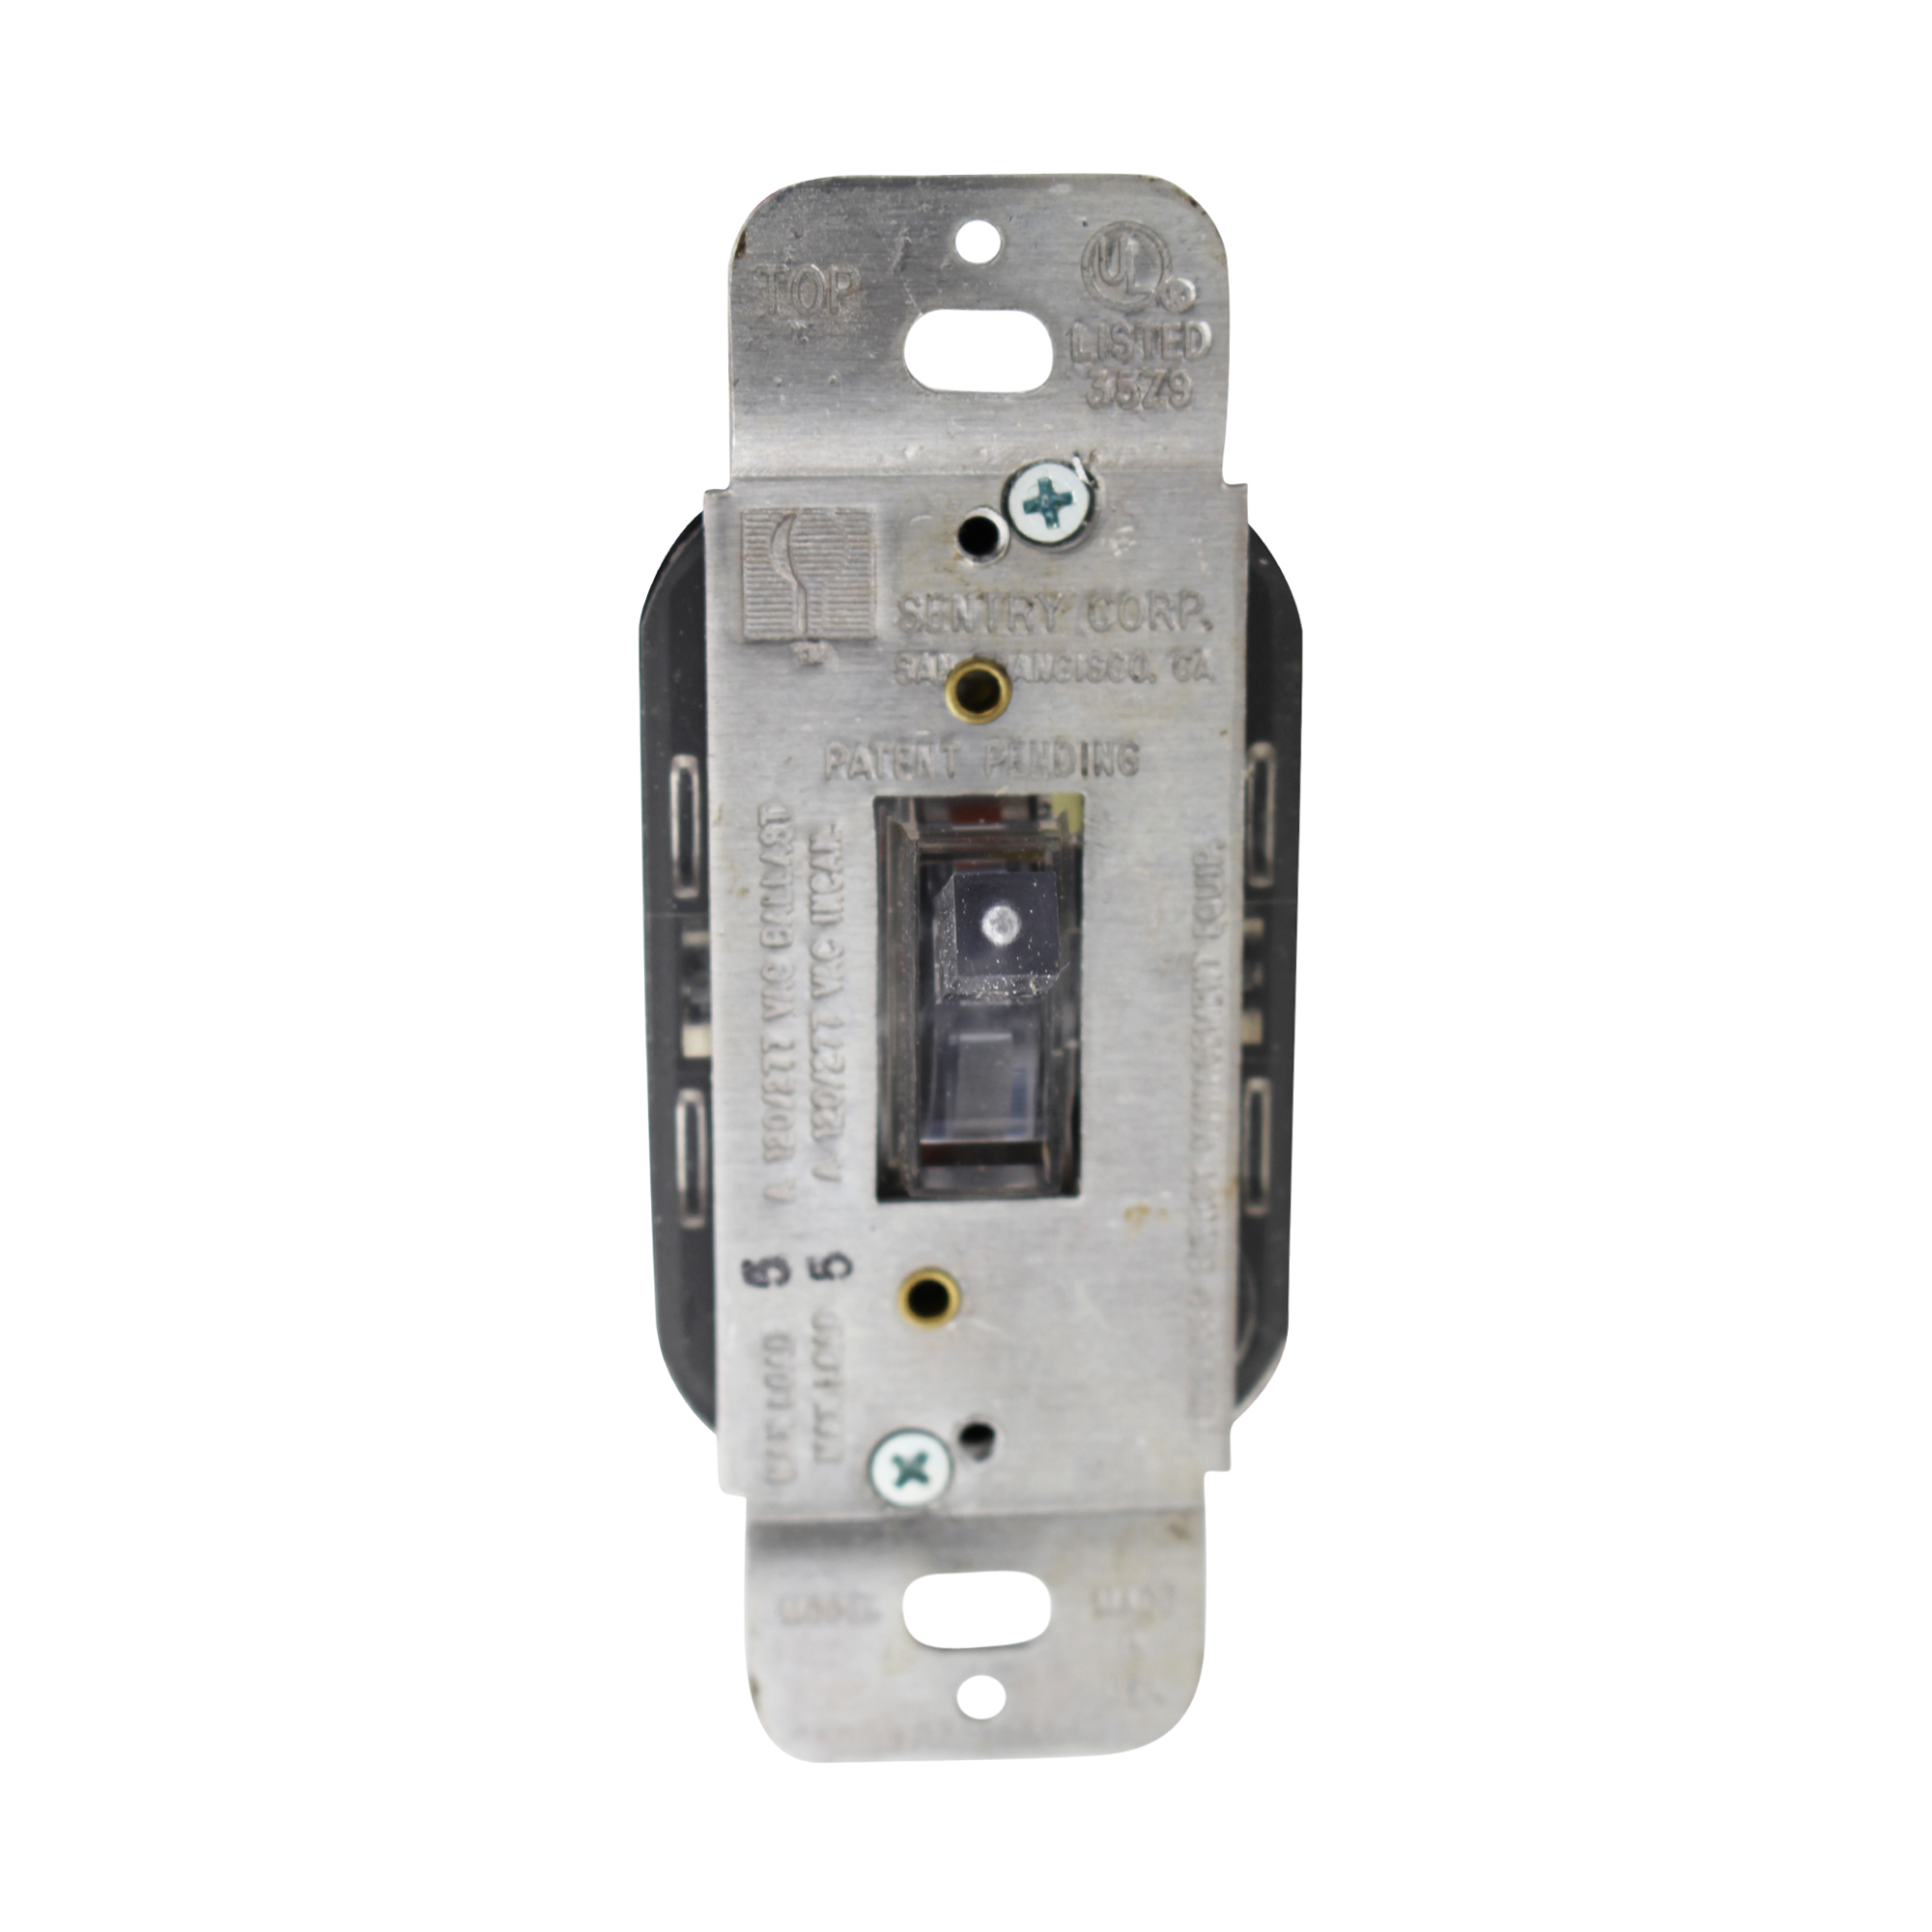 SENTRY SWITCH SS-053277 3-WAY WALL TOGGLE SWITCH, MULTI-VOLTAGE ...